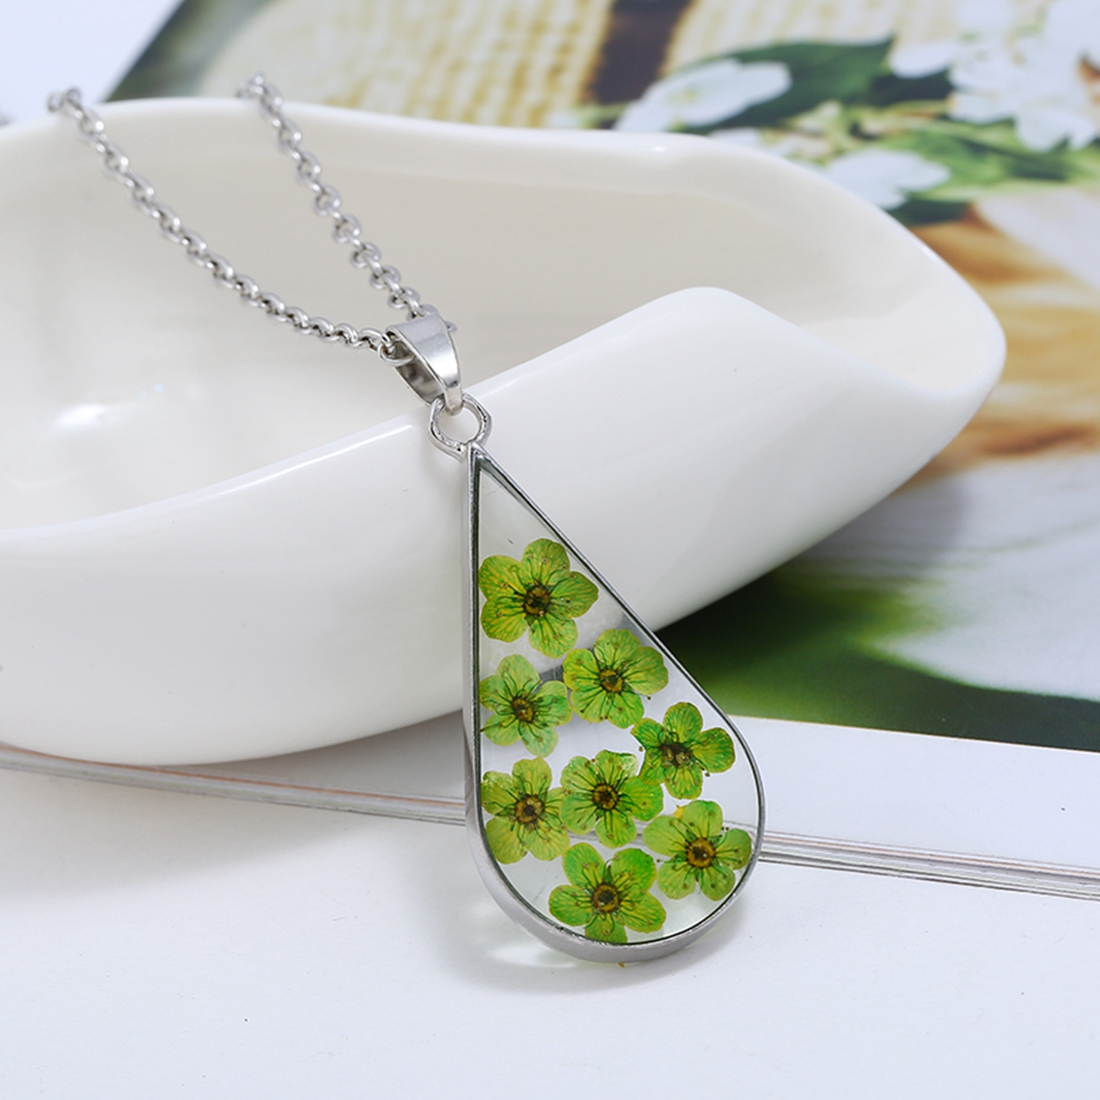 2018 Creative Natural Dried Flowers Resin Necklace Sliver Color Drop Pendent Acrylic Necklace Jewelry Gift For Women Wholesale